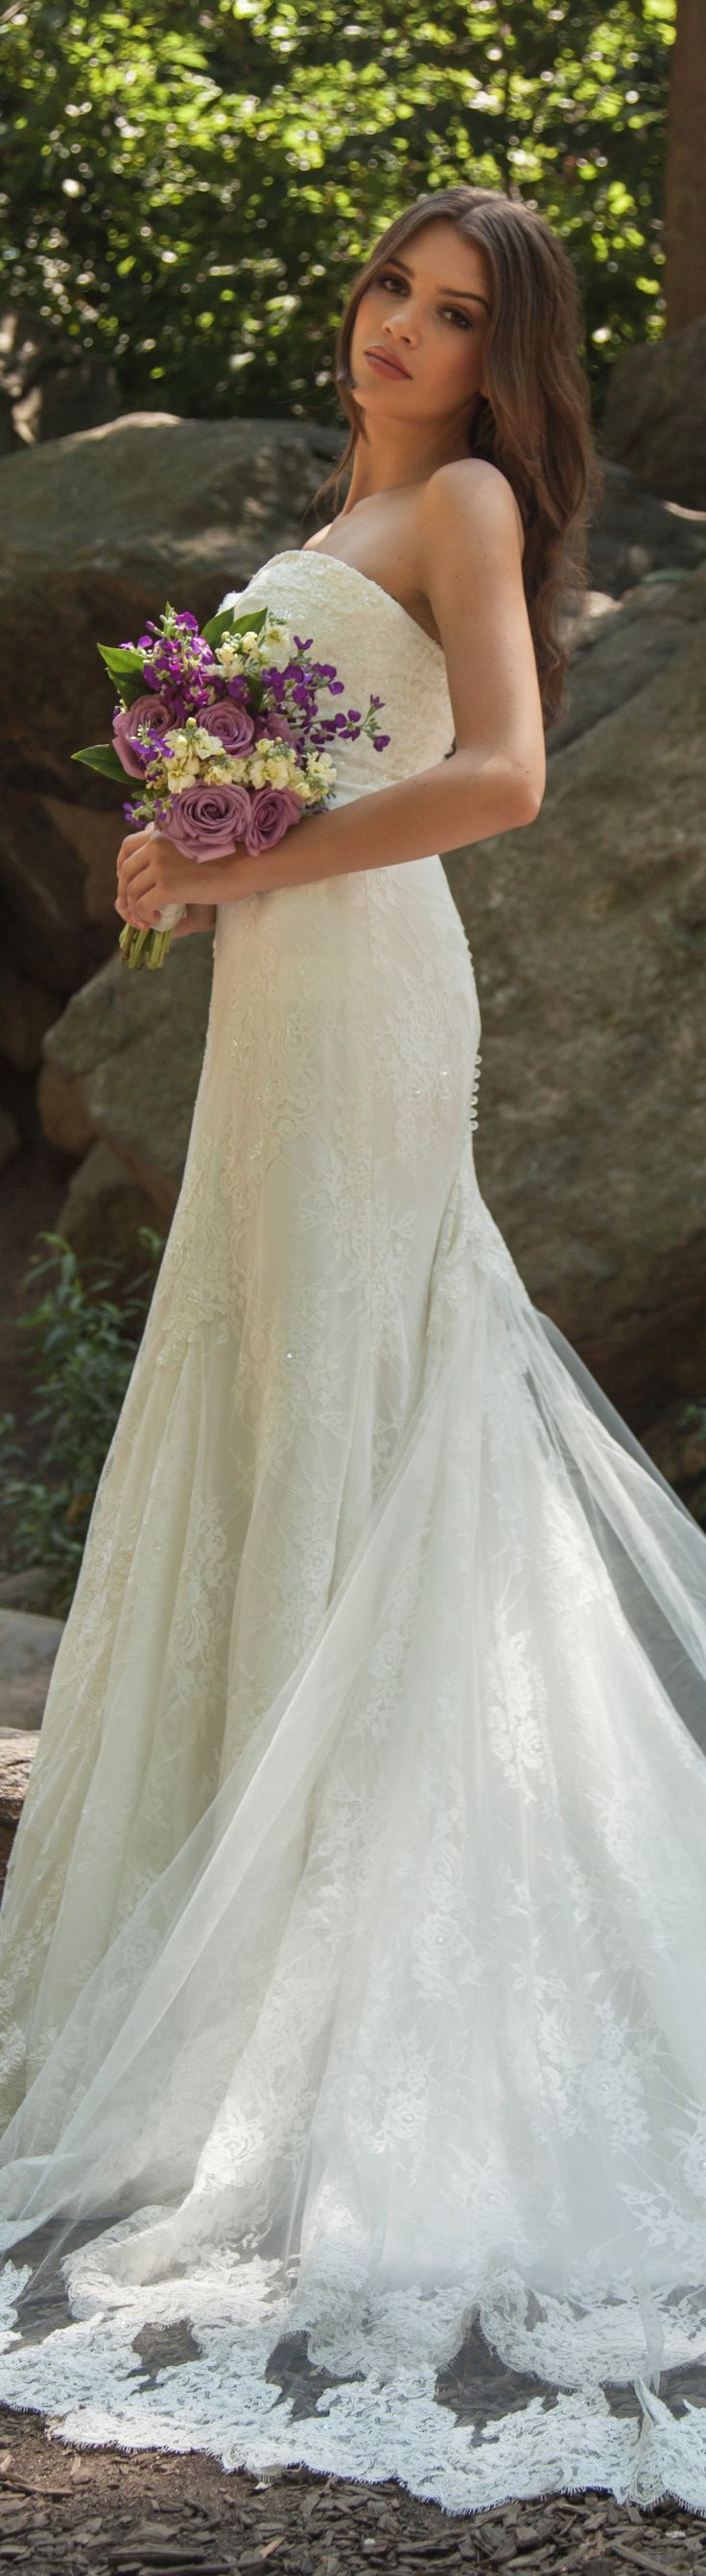 125 best romantic wedding dresses images on pinterest romantic